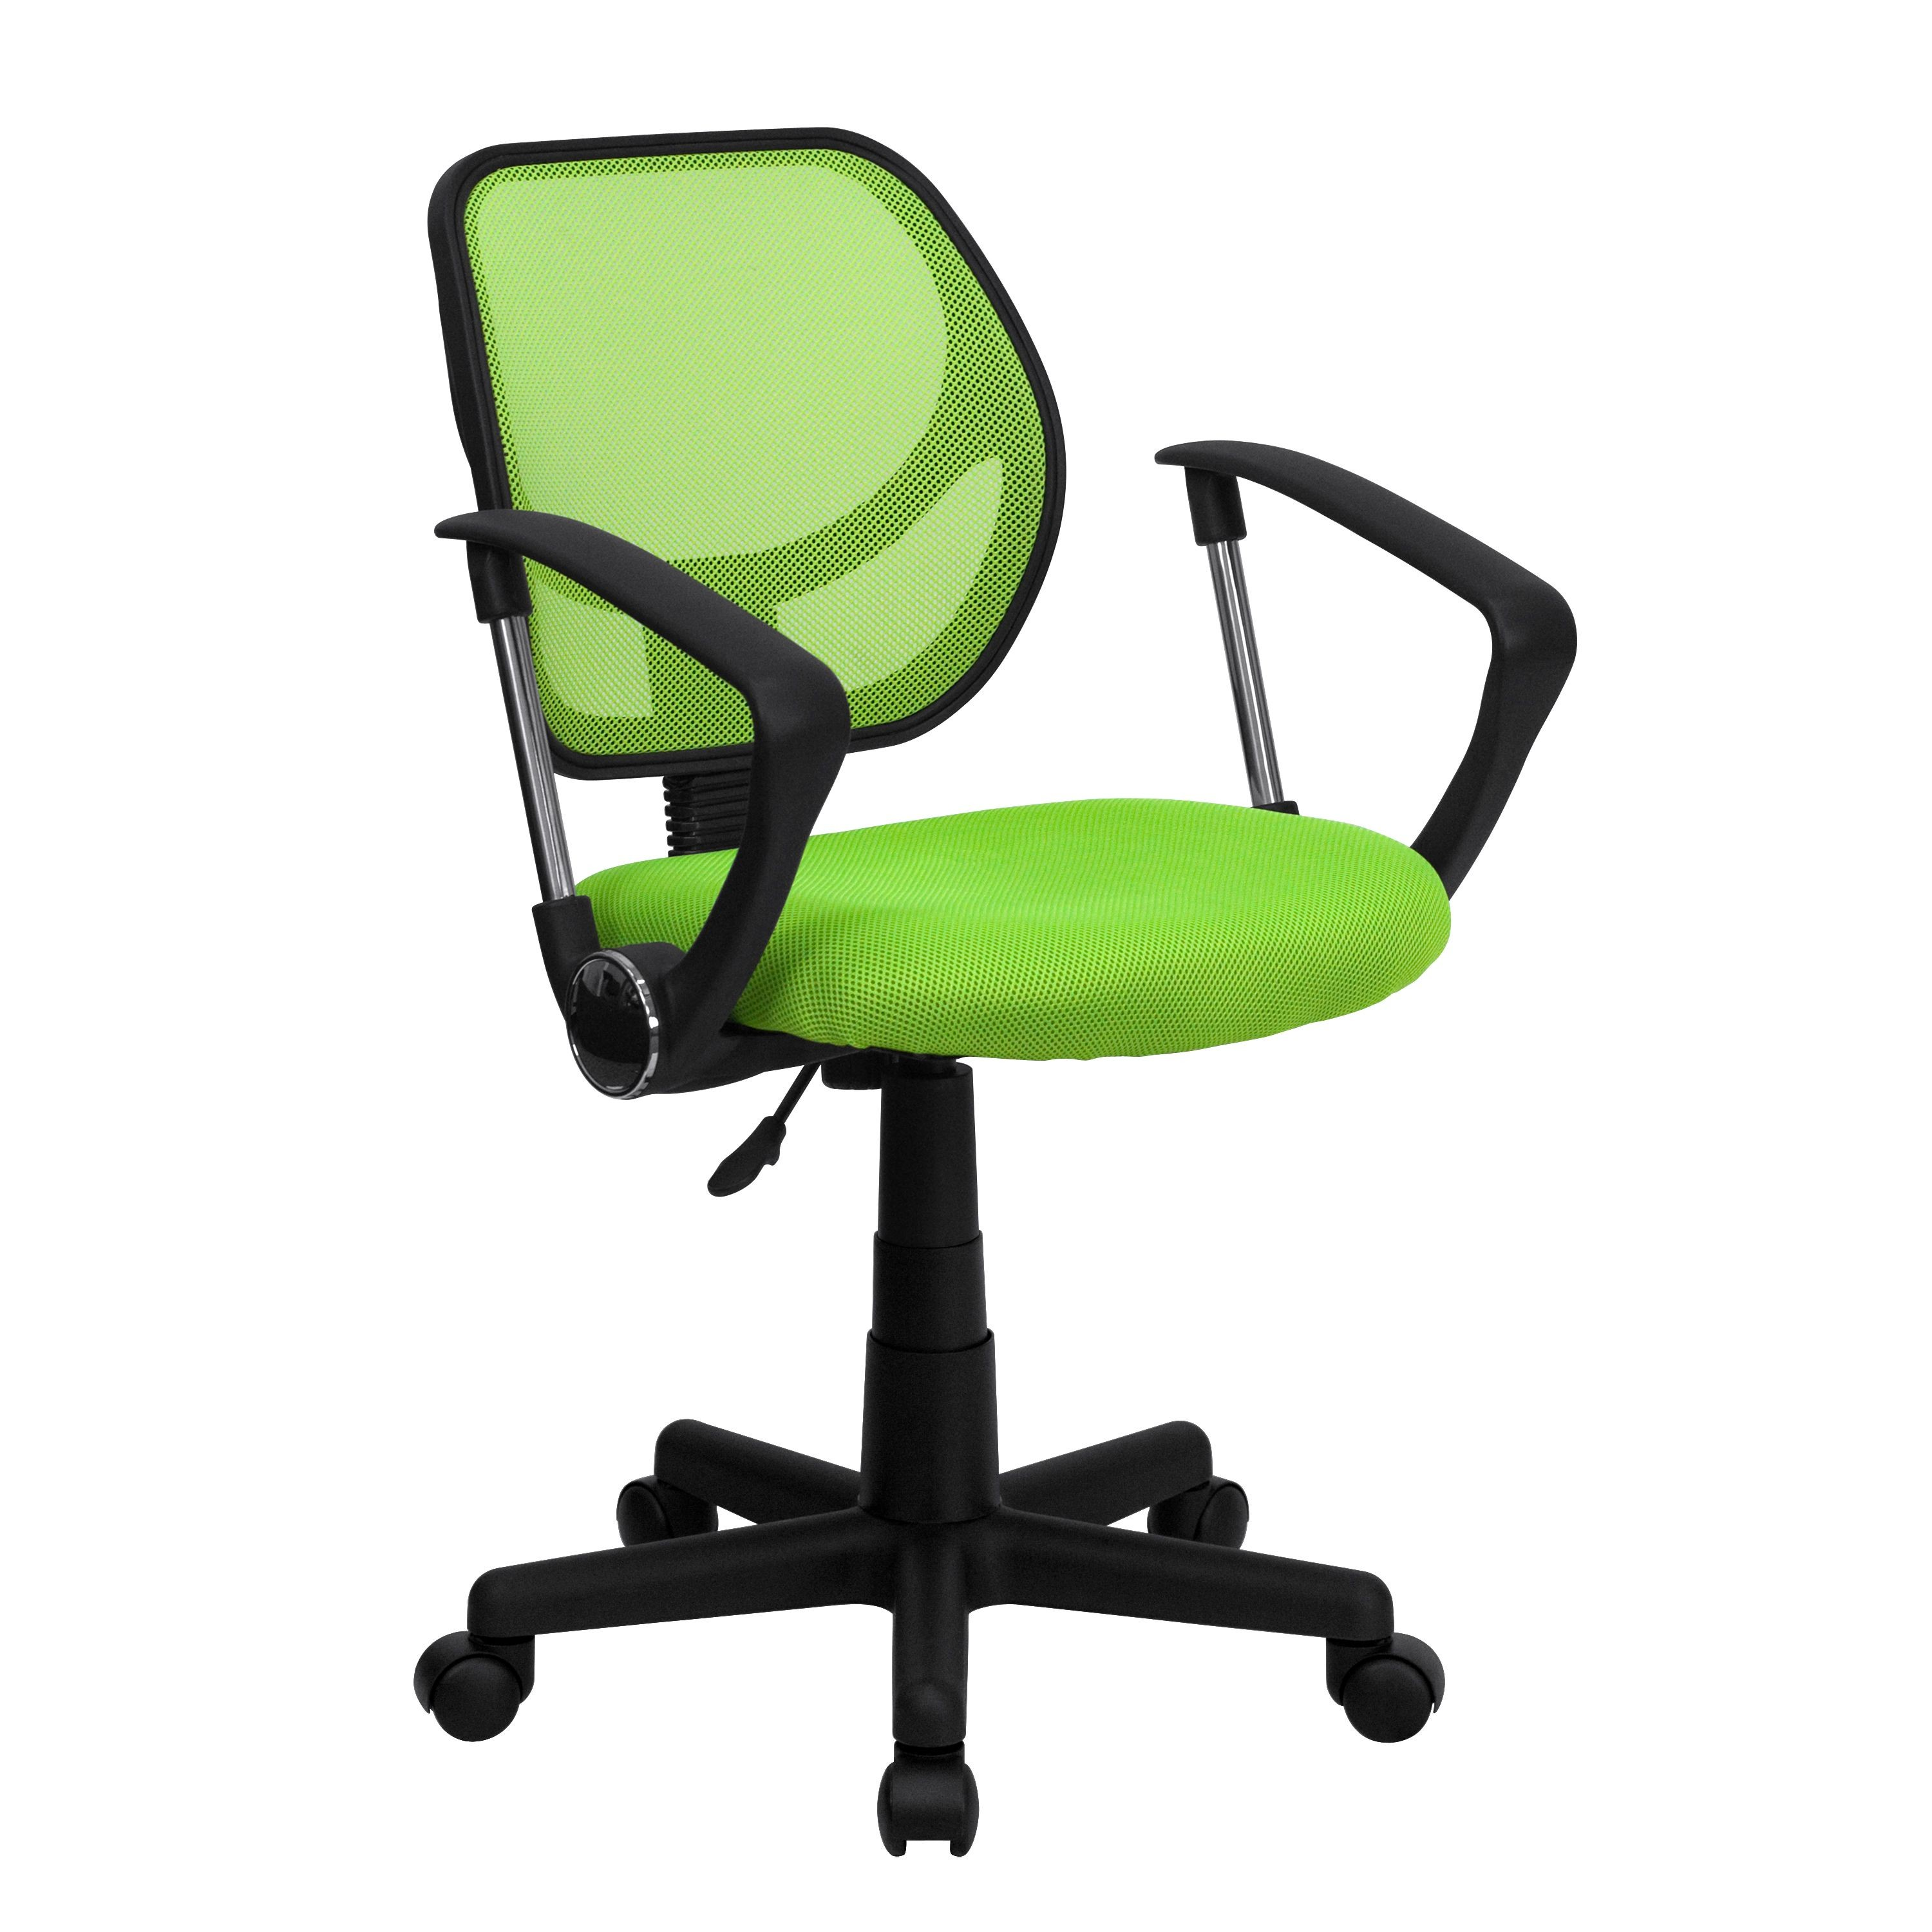 Flash Furniture WA-3074-GN-A-GG Green Mesh Computer Chair with Arms